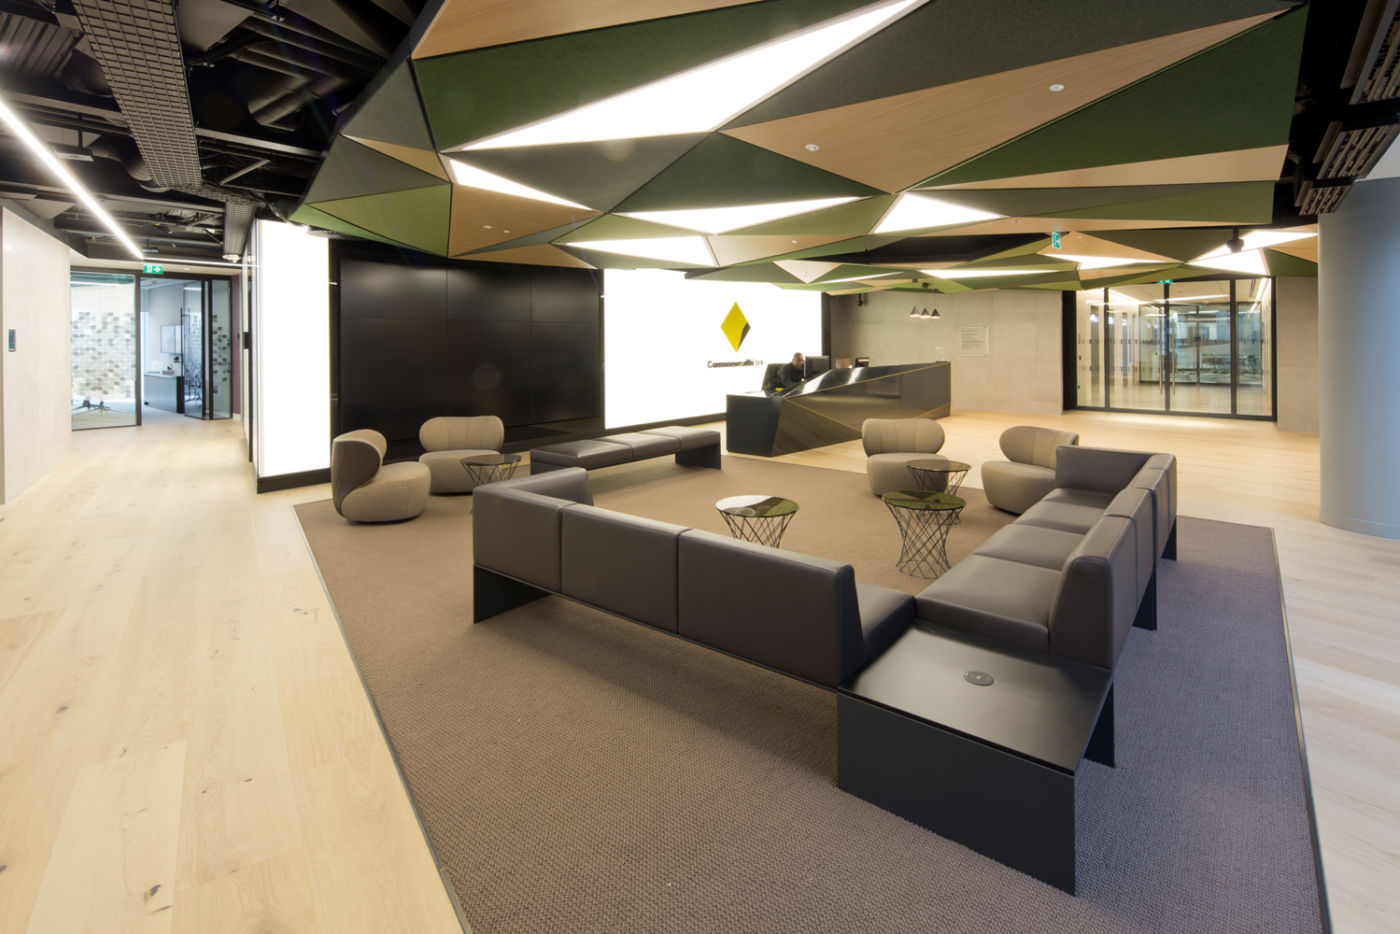 Client seating area in reception